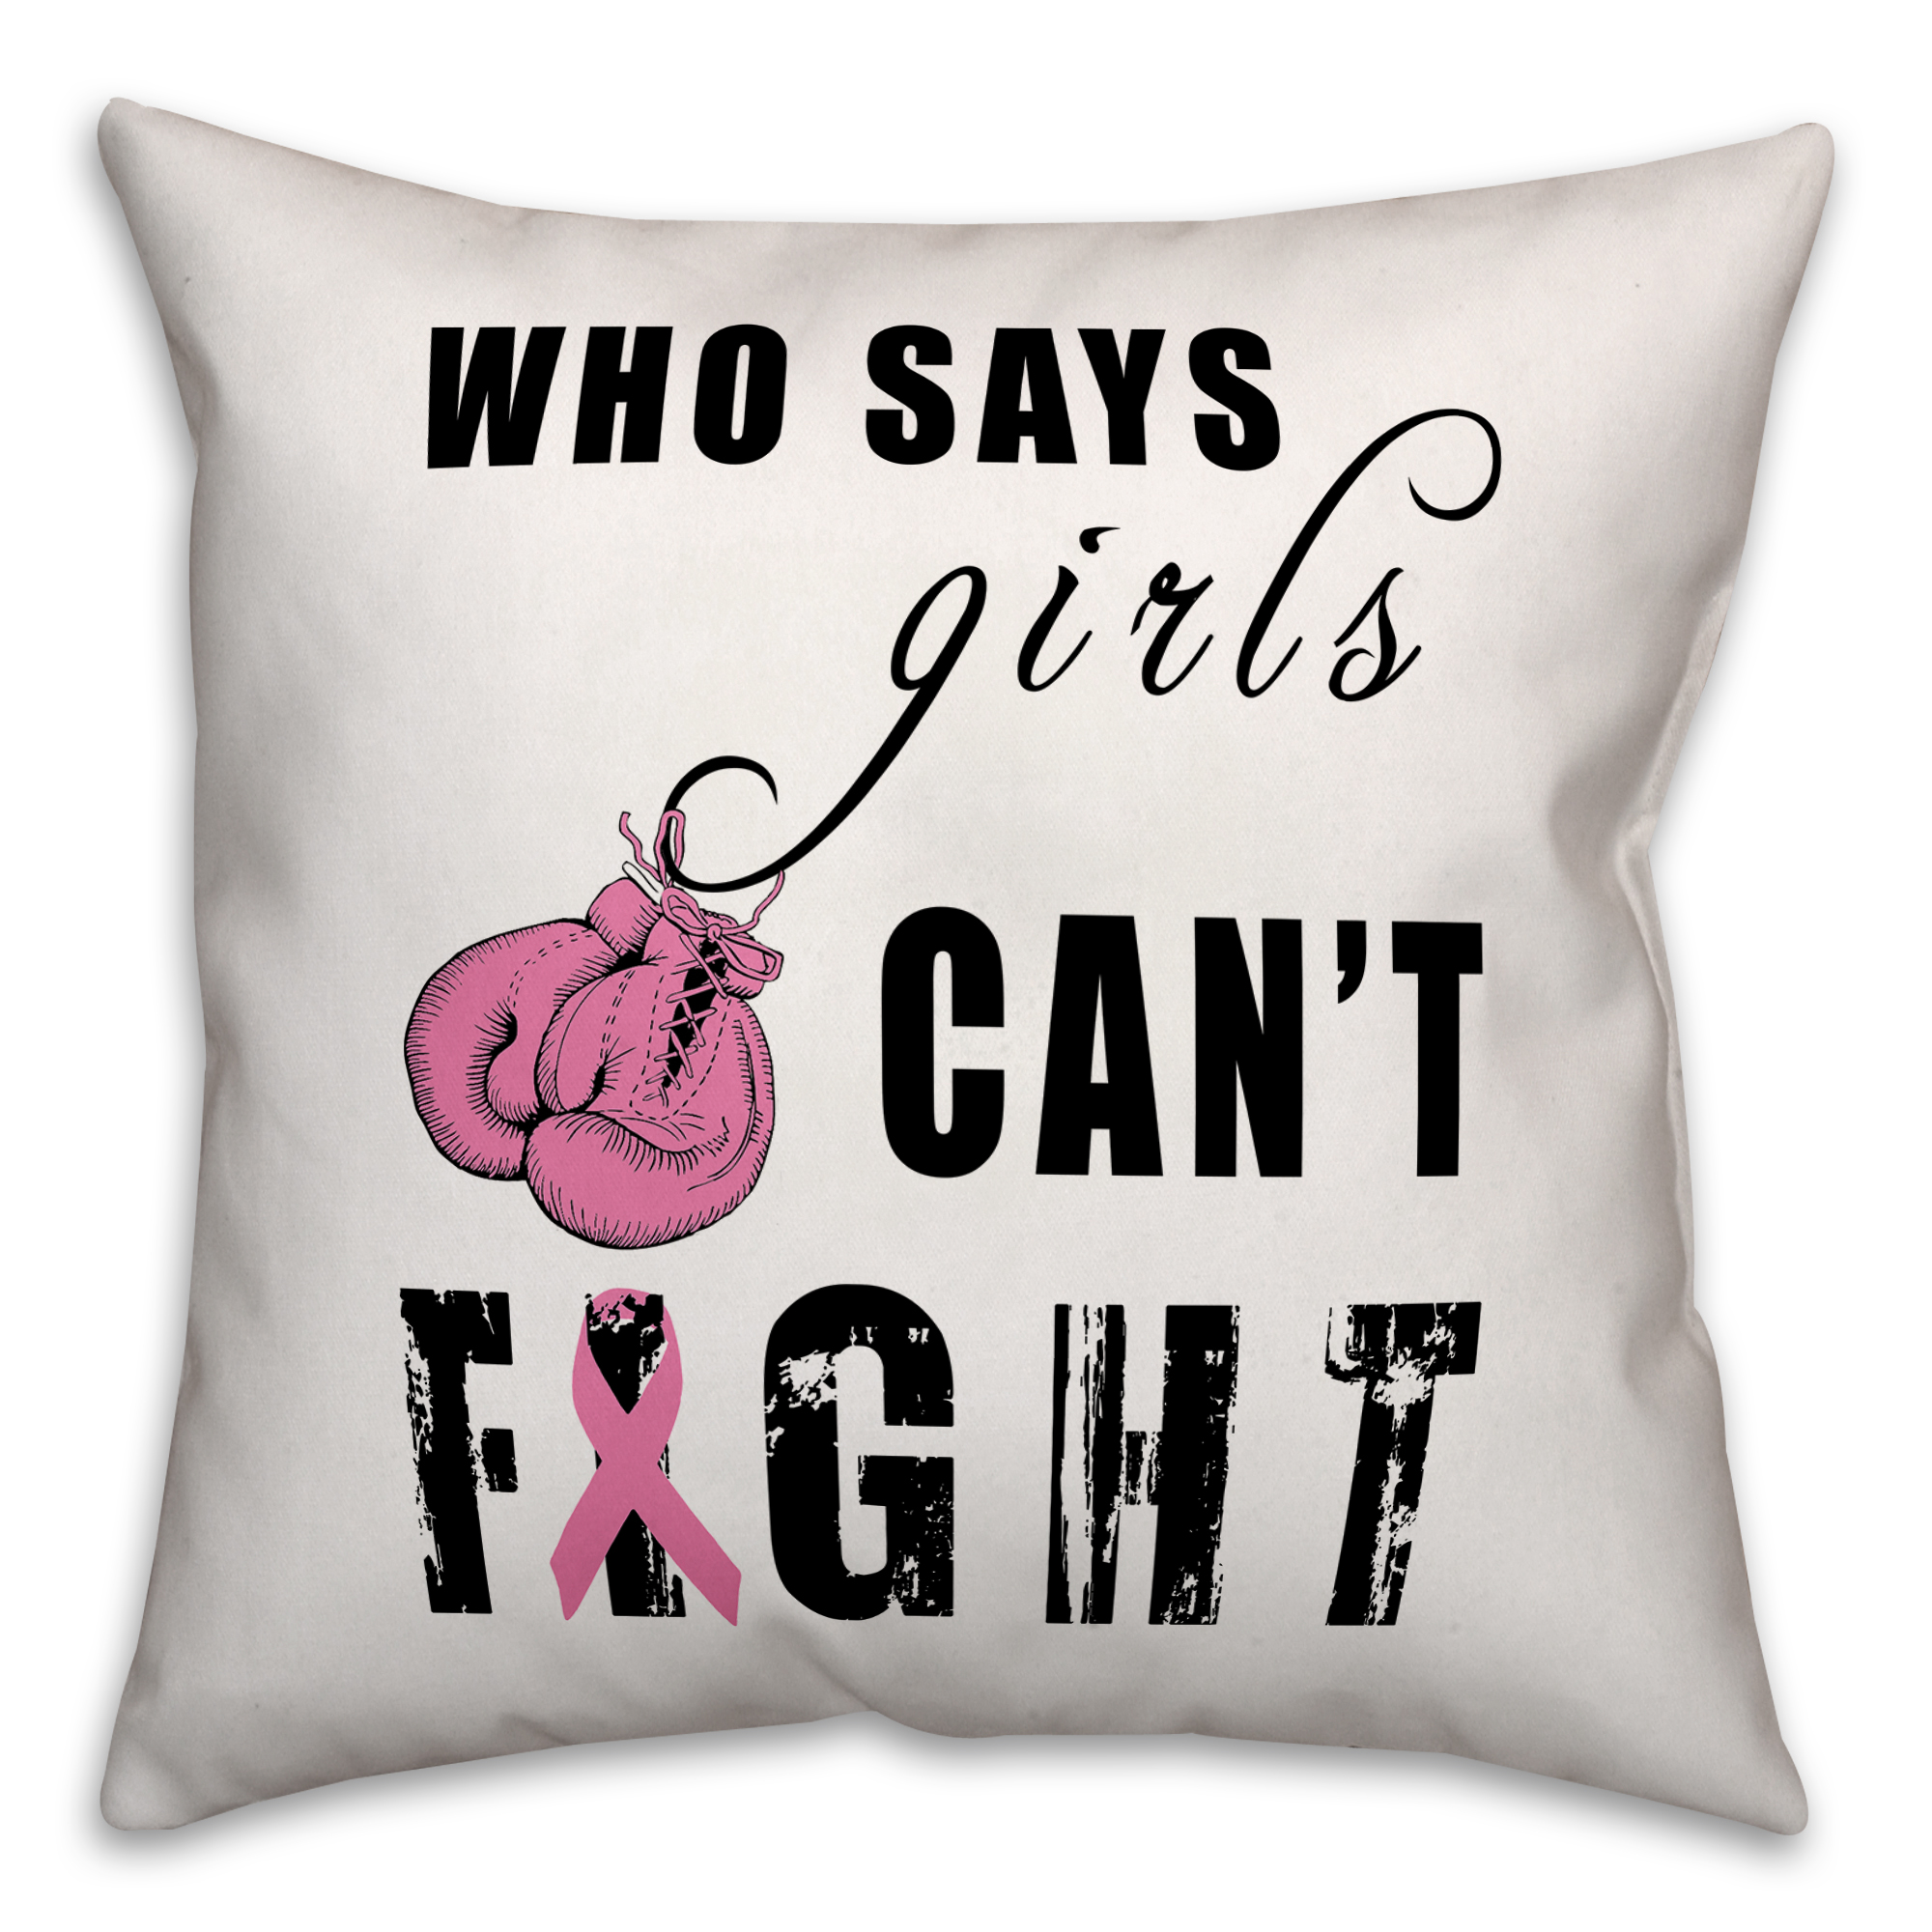 Who Says Girls Can't Fight Breast Cancer Awareness 18x18 Spun Poly Pillow